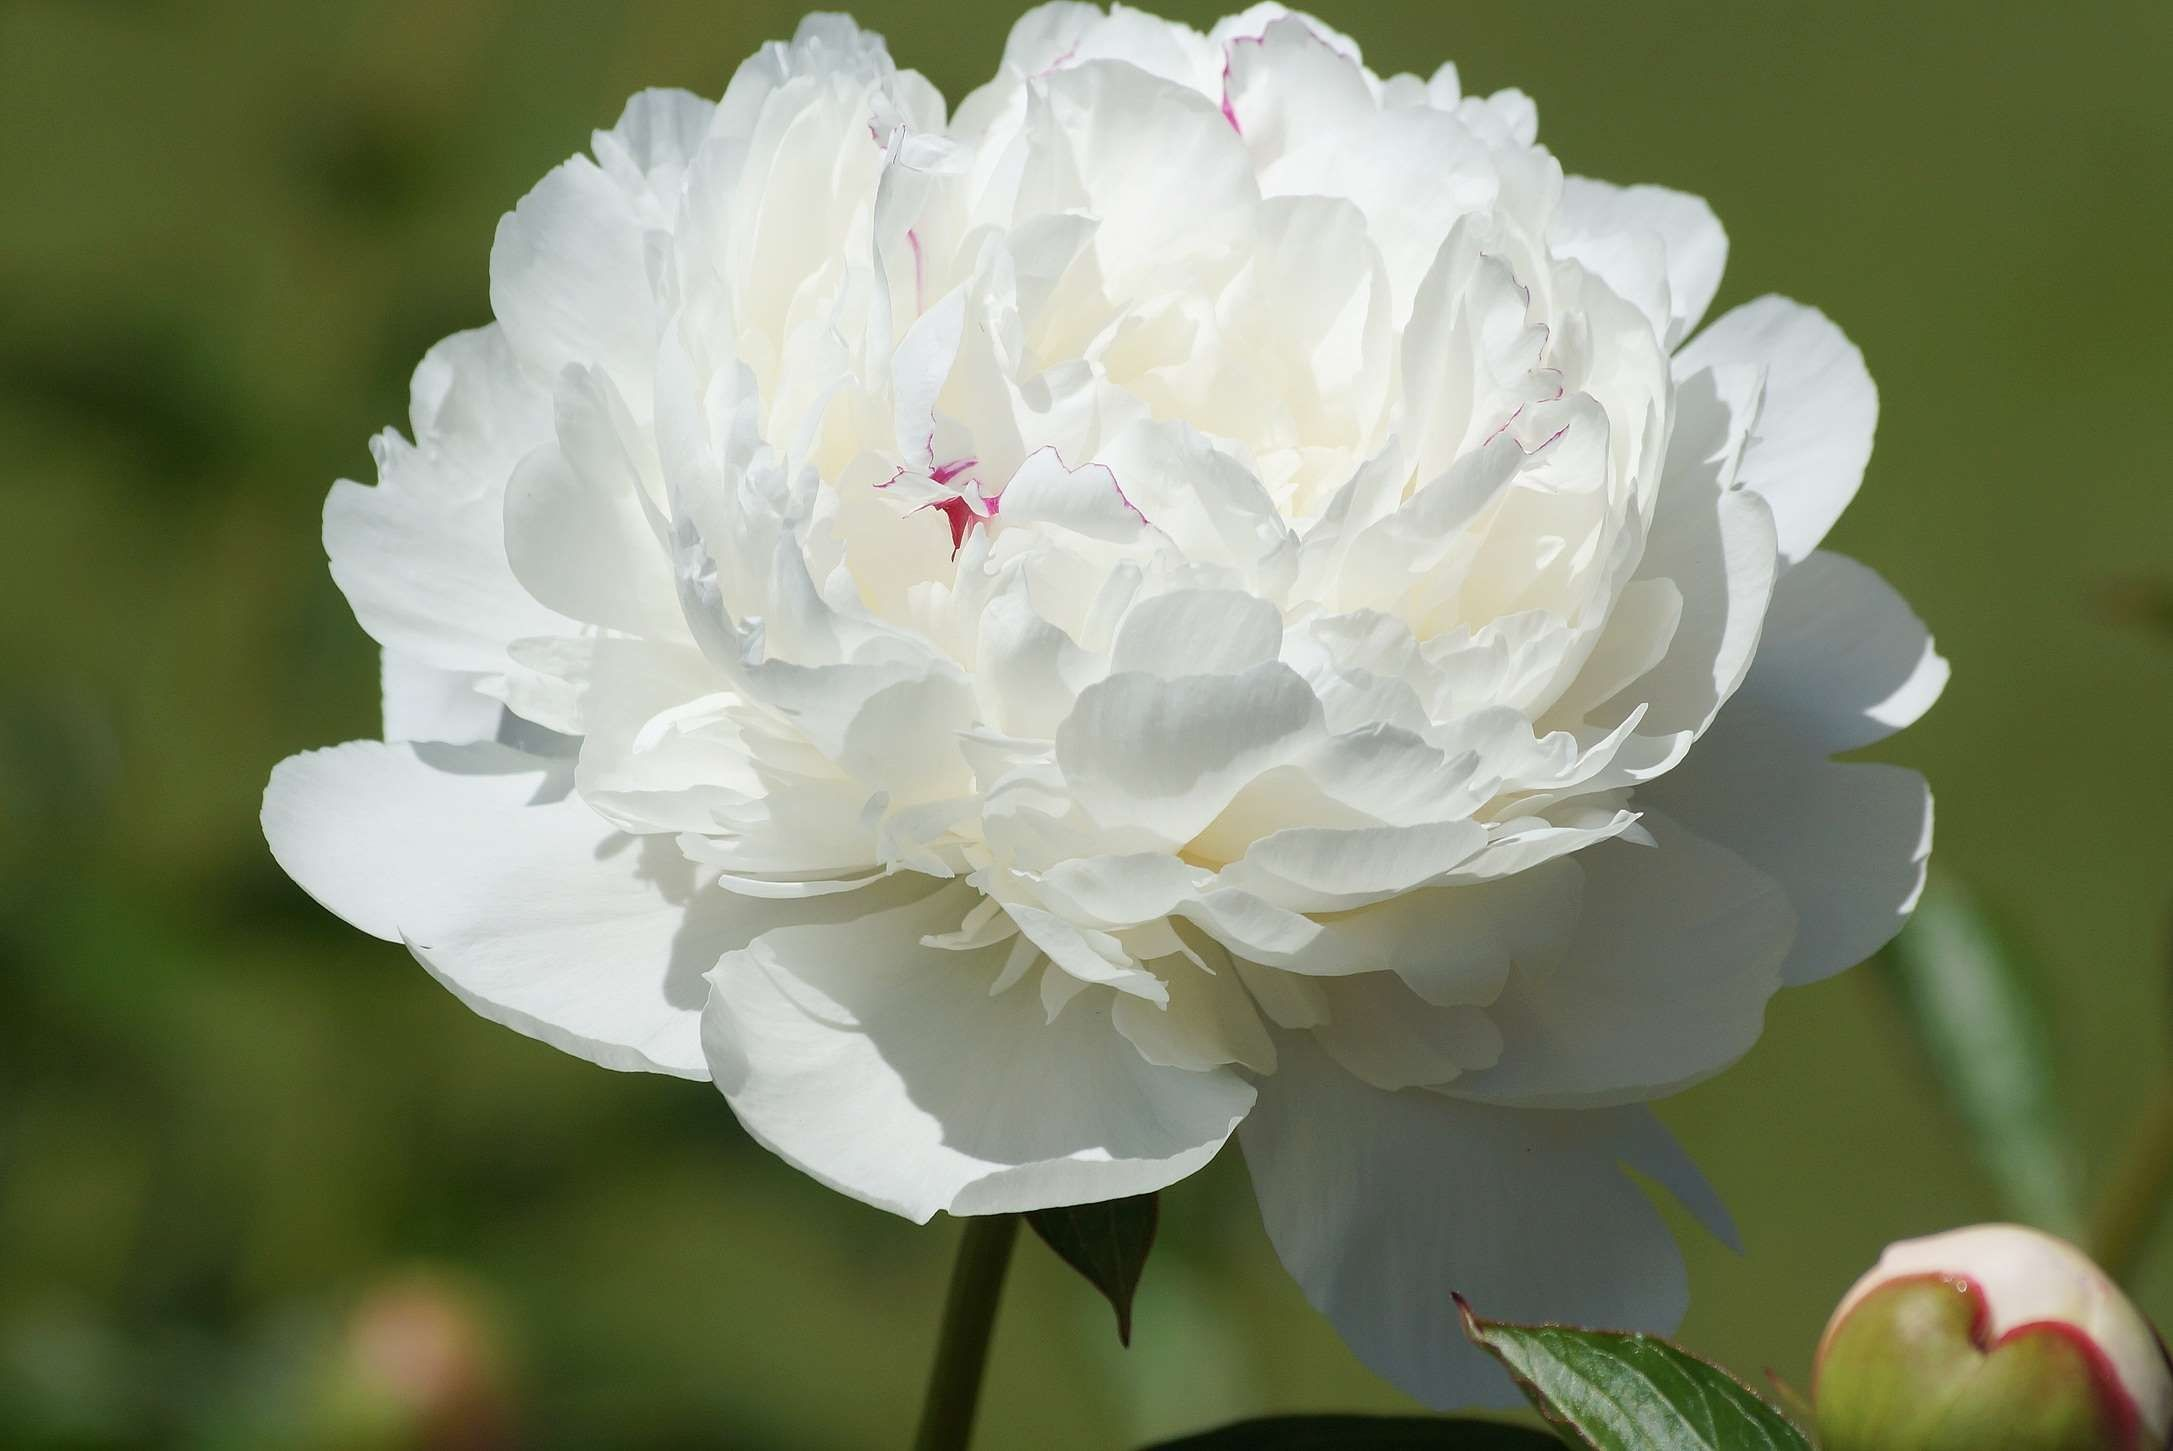 Res: 2173x1451, #flowers #garden #nature #peony #plant #plants #spring #white